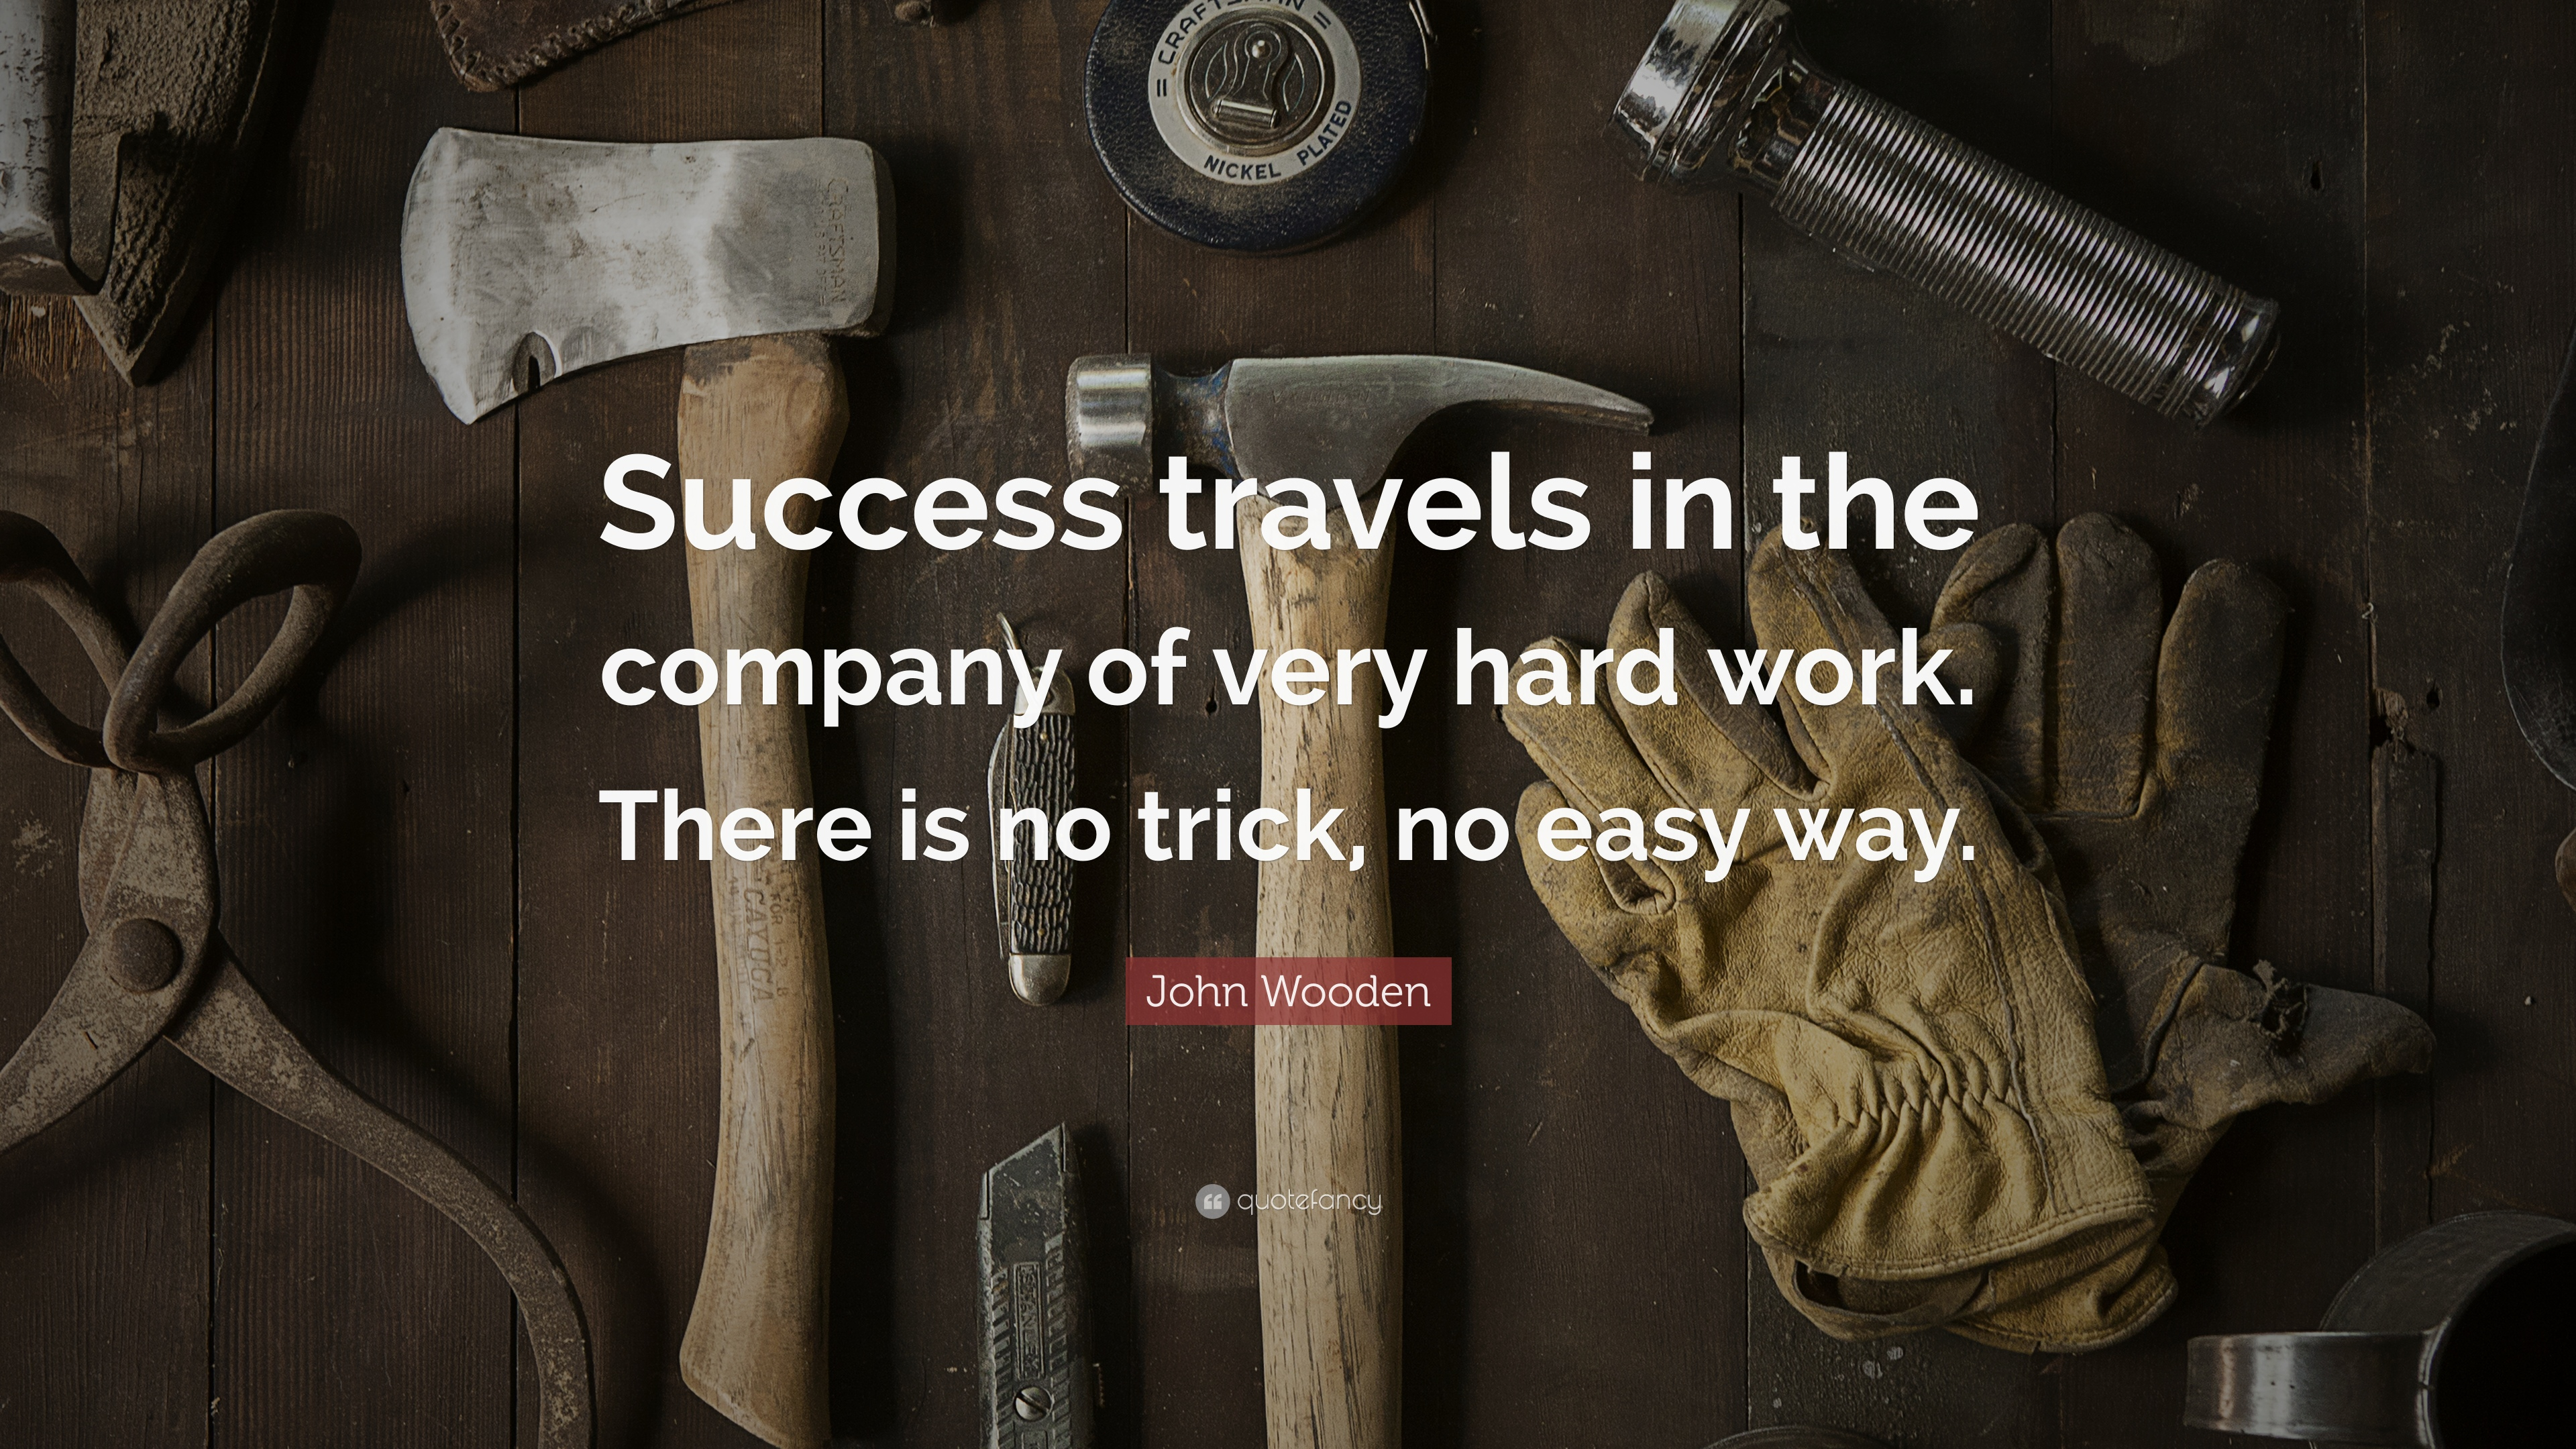 Consistency Quotes Wallpaper John Wooden Quote Success Travels In The Company Of Very